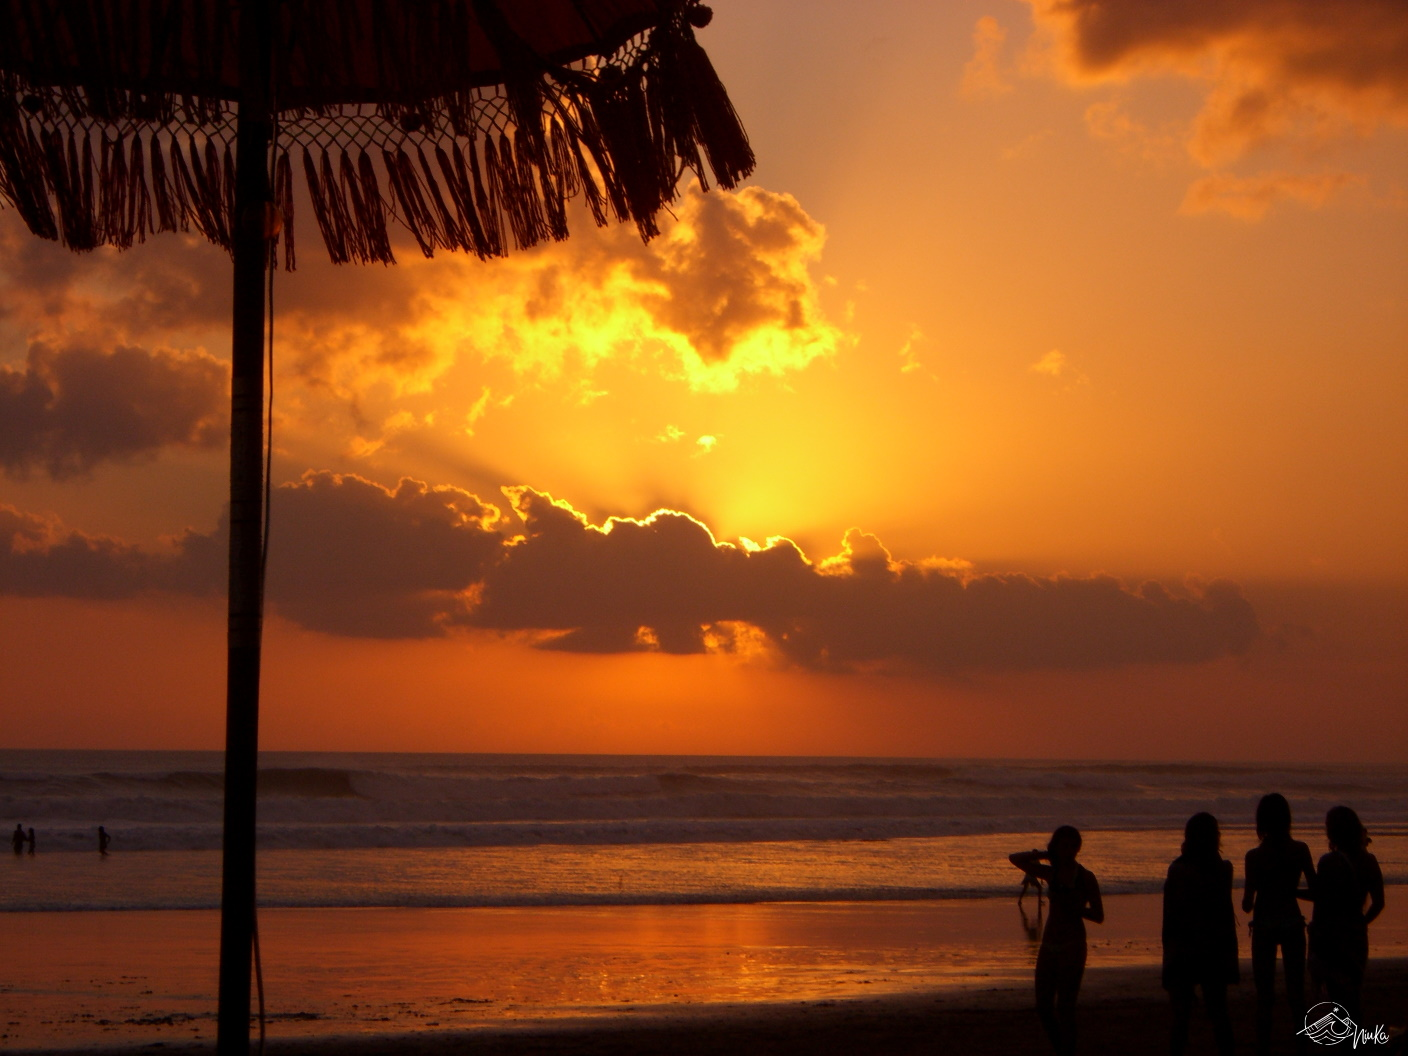 Sunset at Kuta